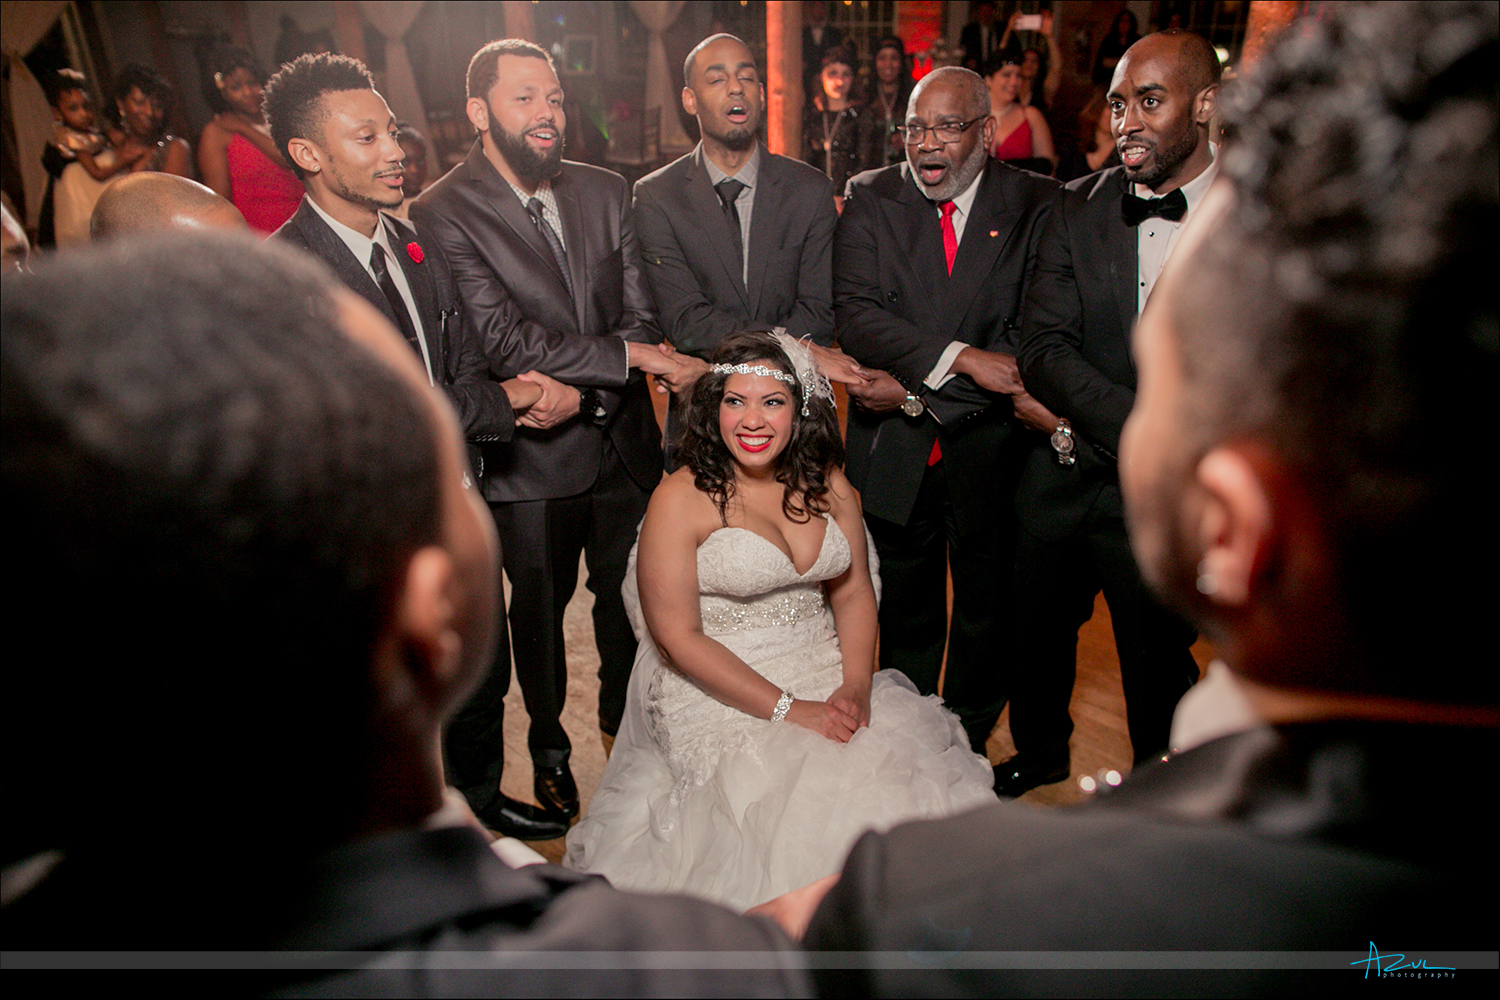 Fraternity tradition is to sing to the bride while at the reception located at The Cotton Room